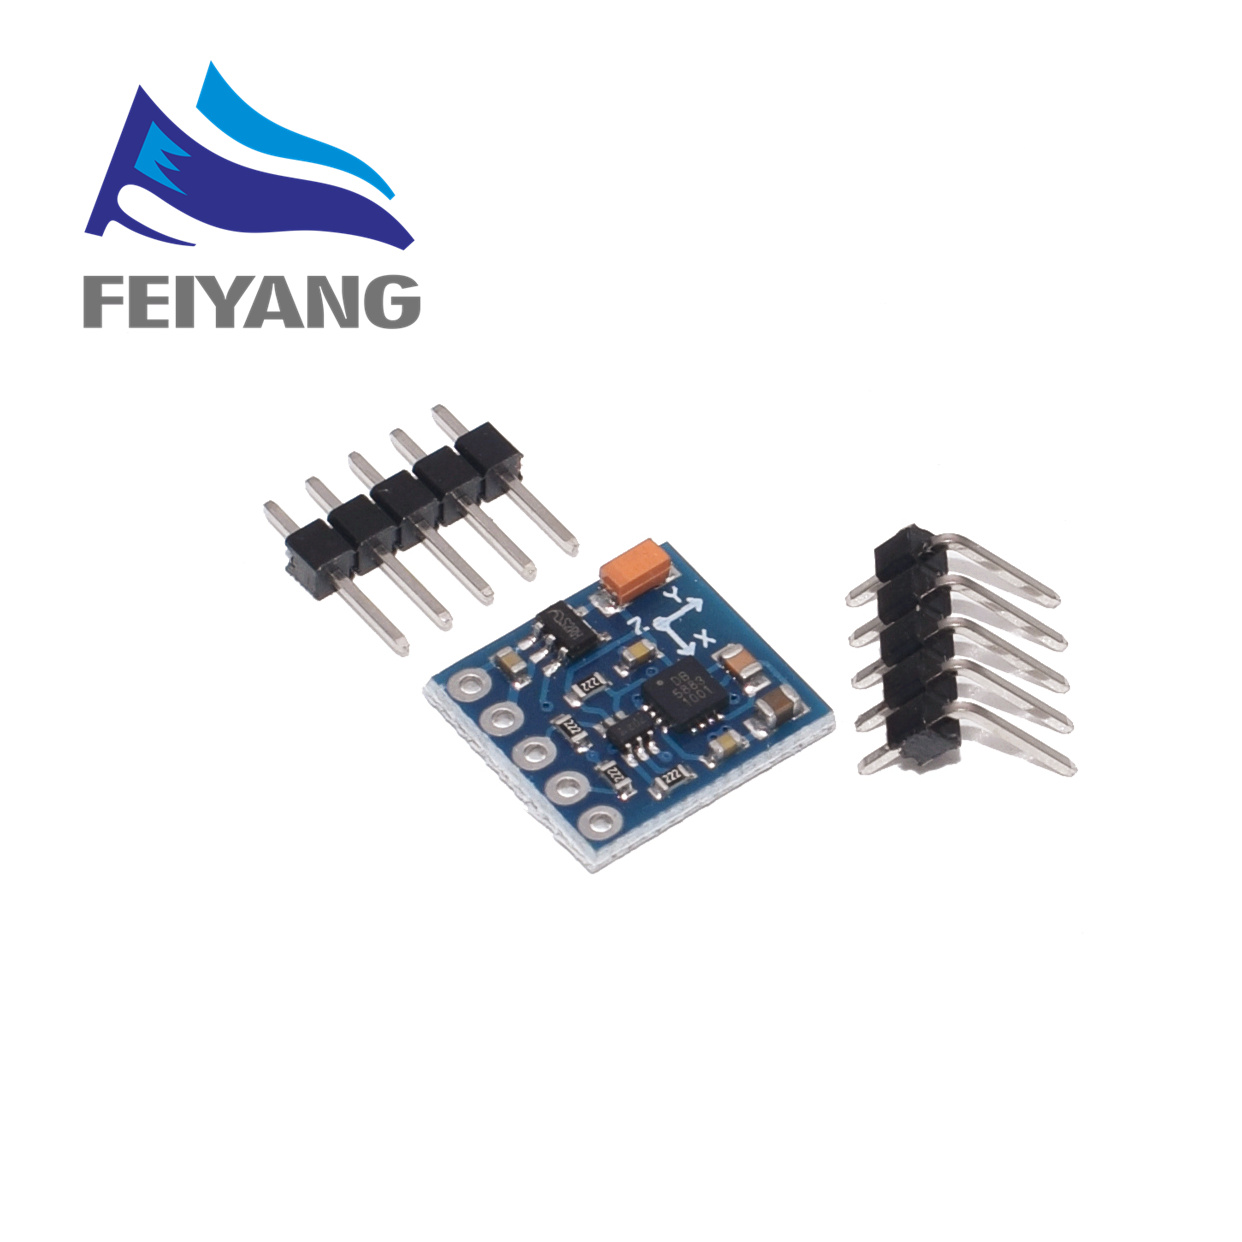 GY-271 HMC5883L module electronic compass compass module three-axis magnetic field sensor In stock High quality